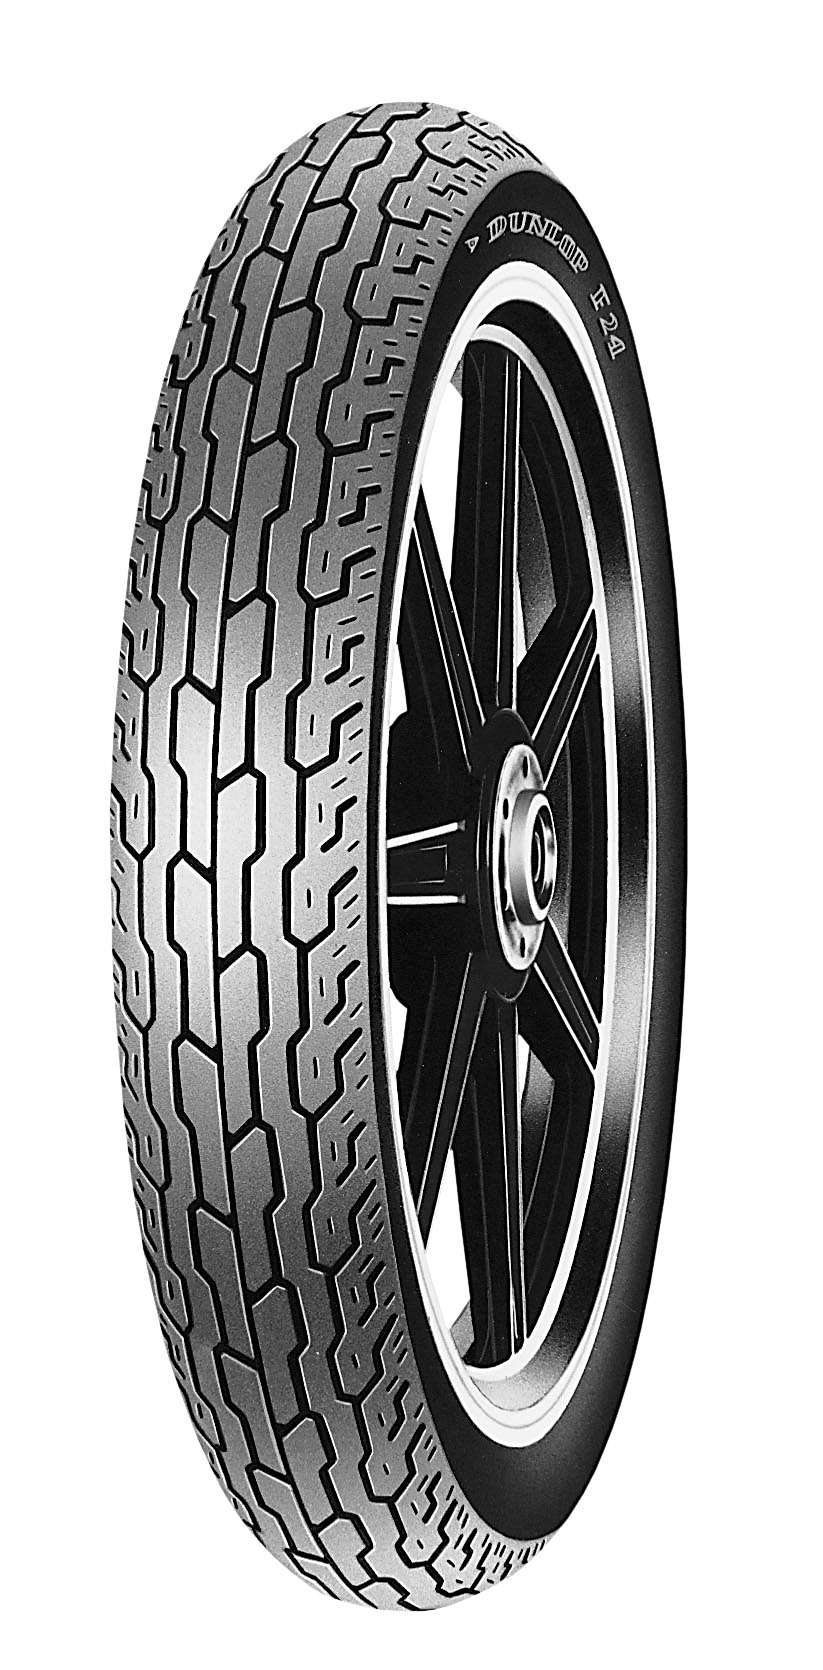 Dunlop F24 Front Tire - 110/90H19 TL (110/90-19)